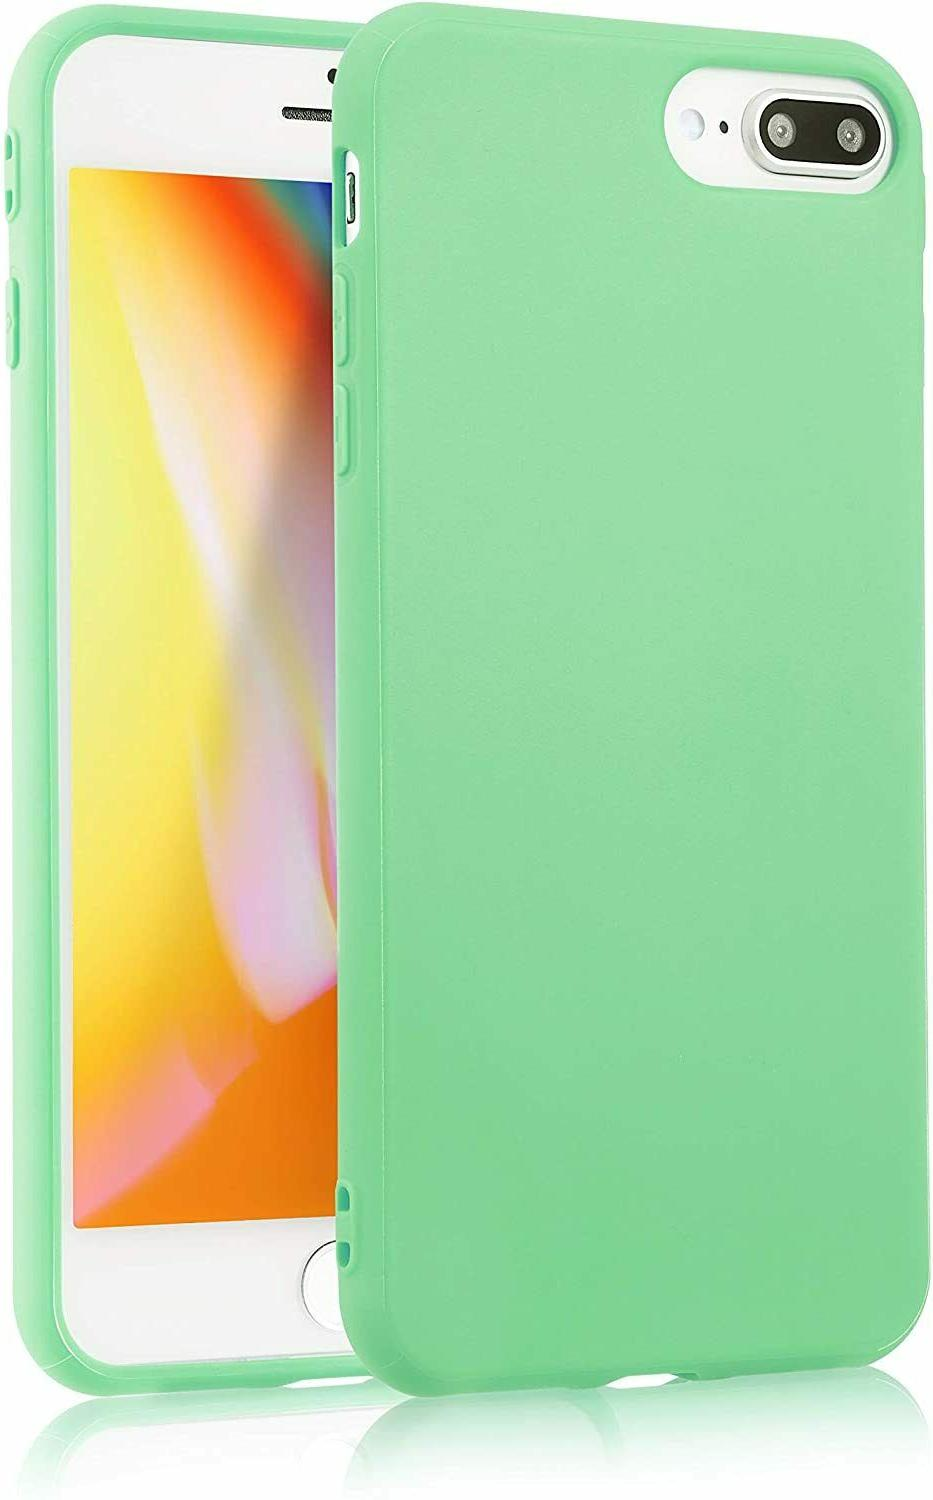 iPhone Shockproof Silicone TPU Cover